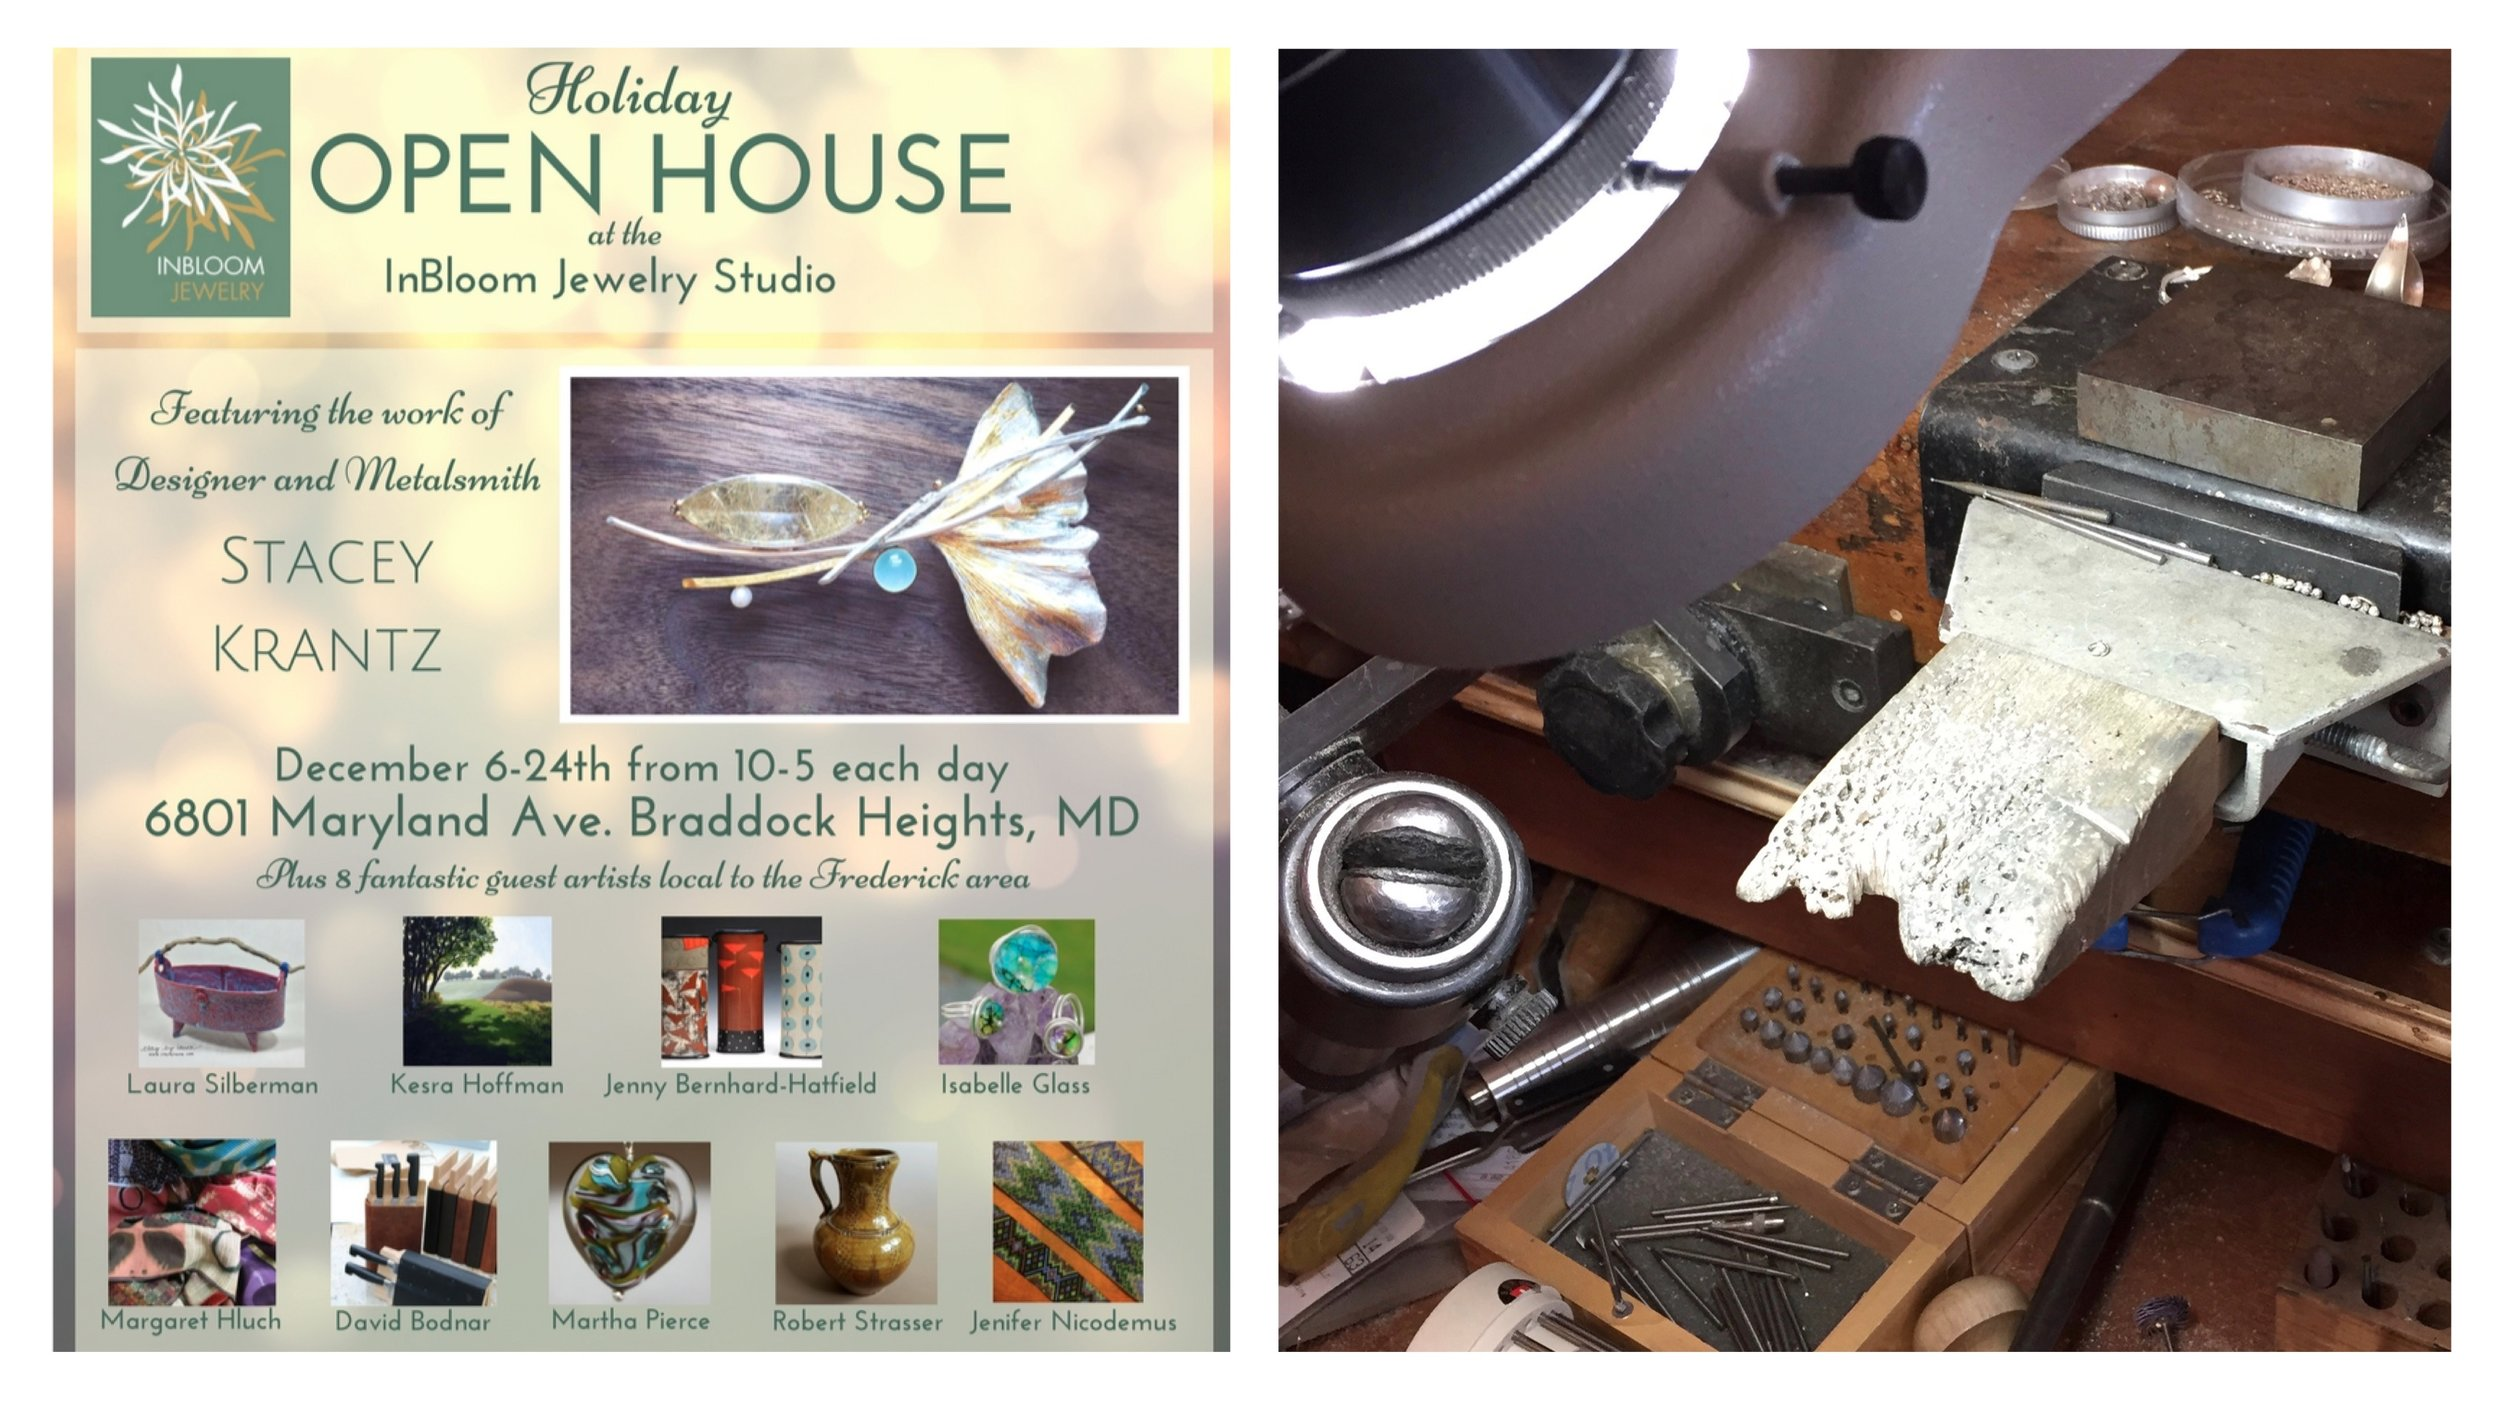 Take a drive to this Open Studio and you won't be disappointed!  Stacey Krantz  invited a wonderful mishmash of area artists to participate in her annual Open Studio including me. Not only is her fantastic workspace filled with her own amazing creations, there are gifts galore to satisfy a number of people on your holiday list. I've already shopped there myself and made note of some more I'd like to purchase. I'll be in Stacey's studio this coming weekend -- so I hope you'll stop in and say hello.